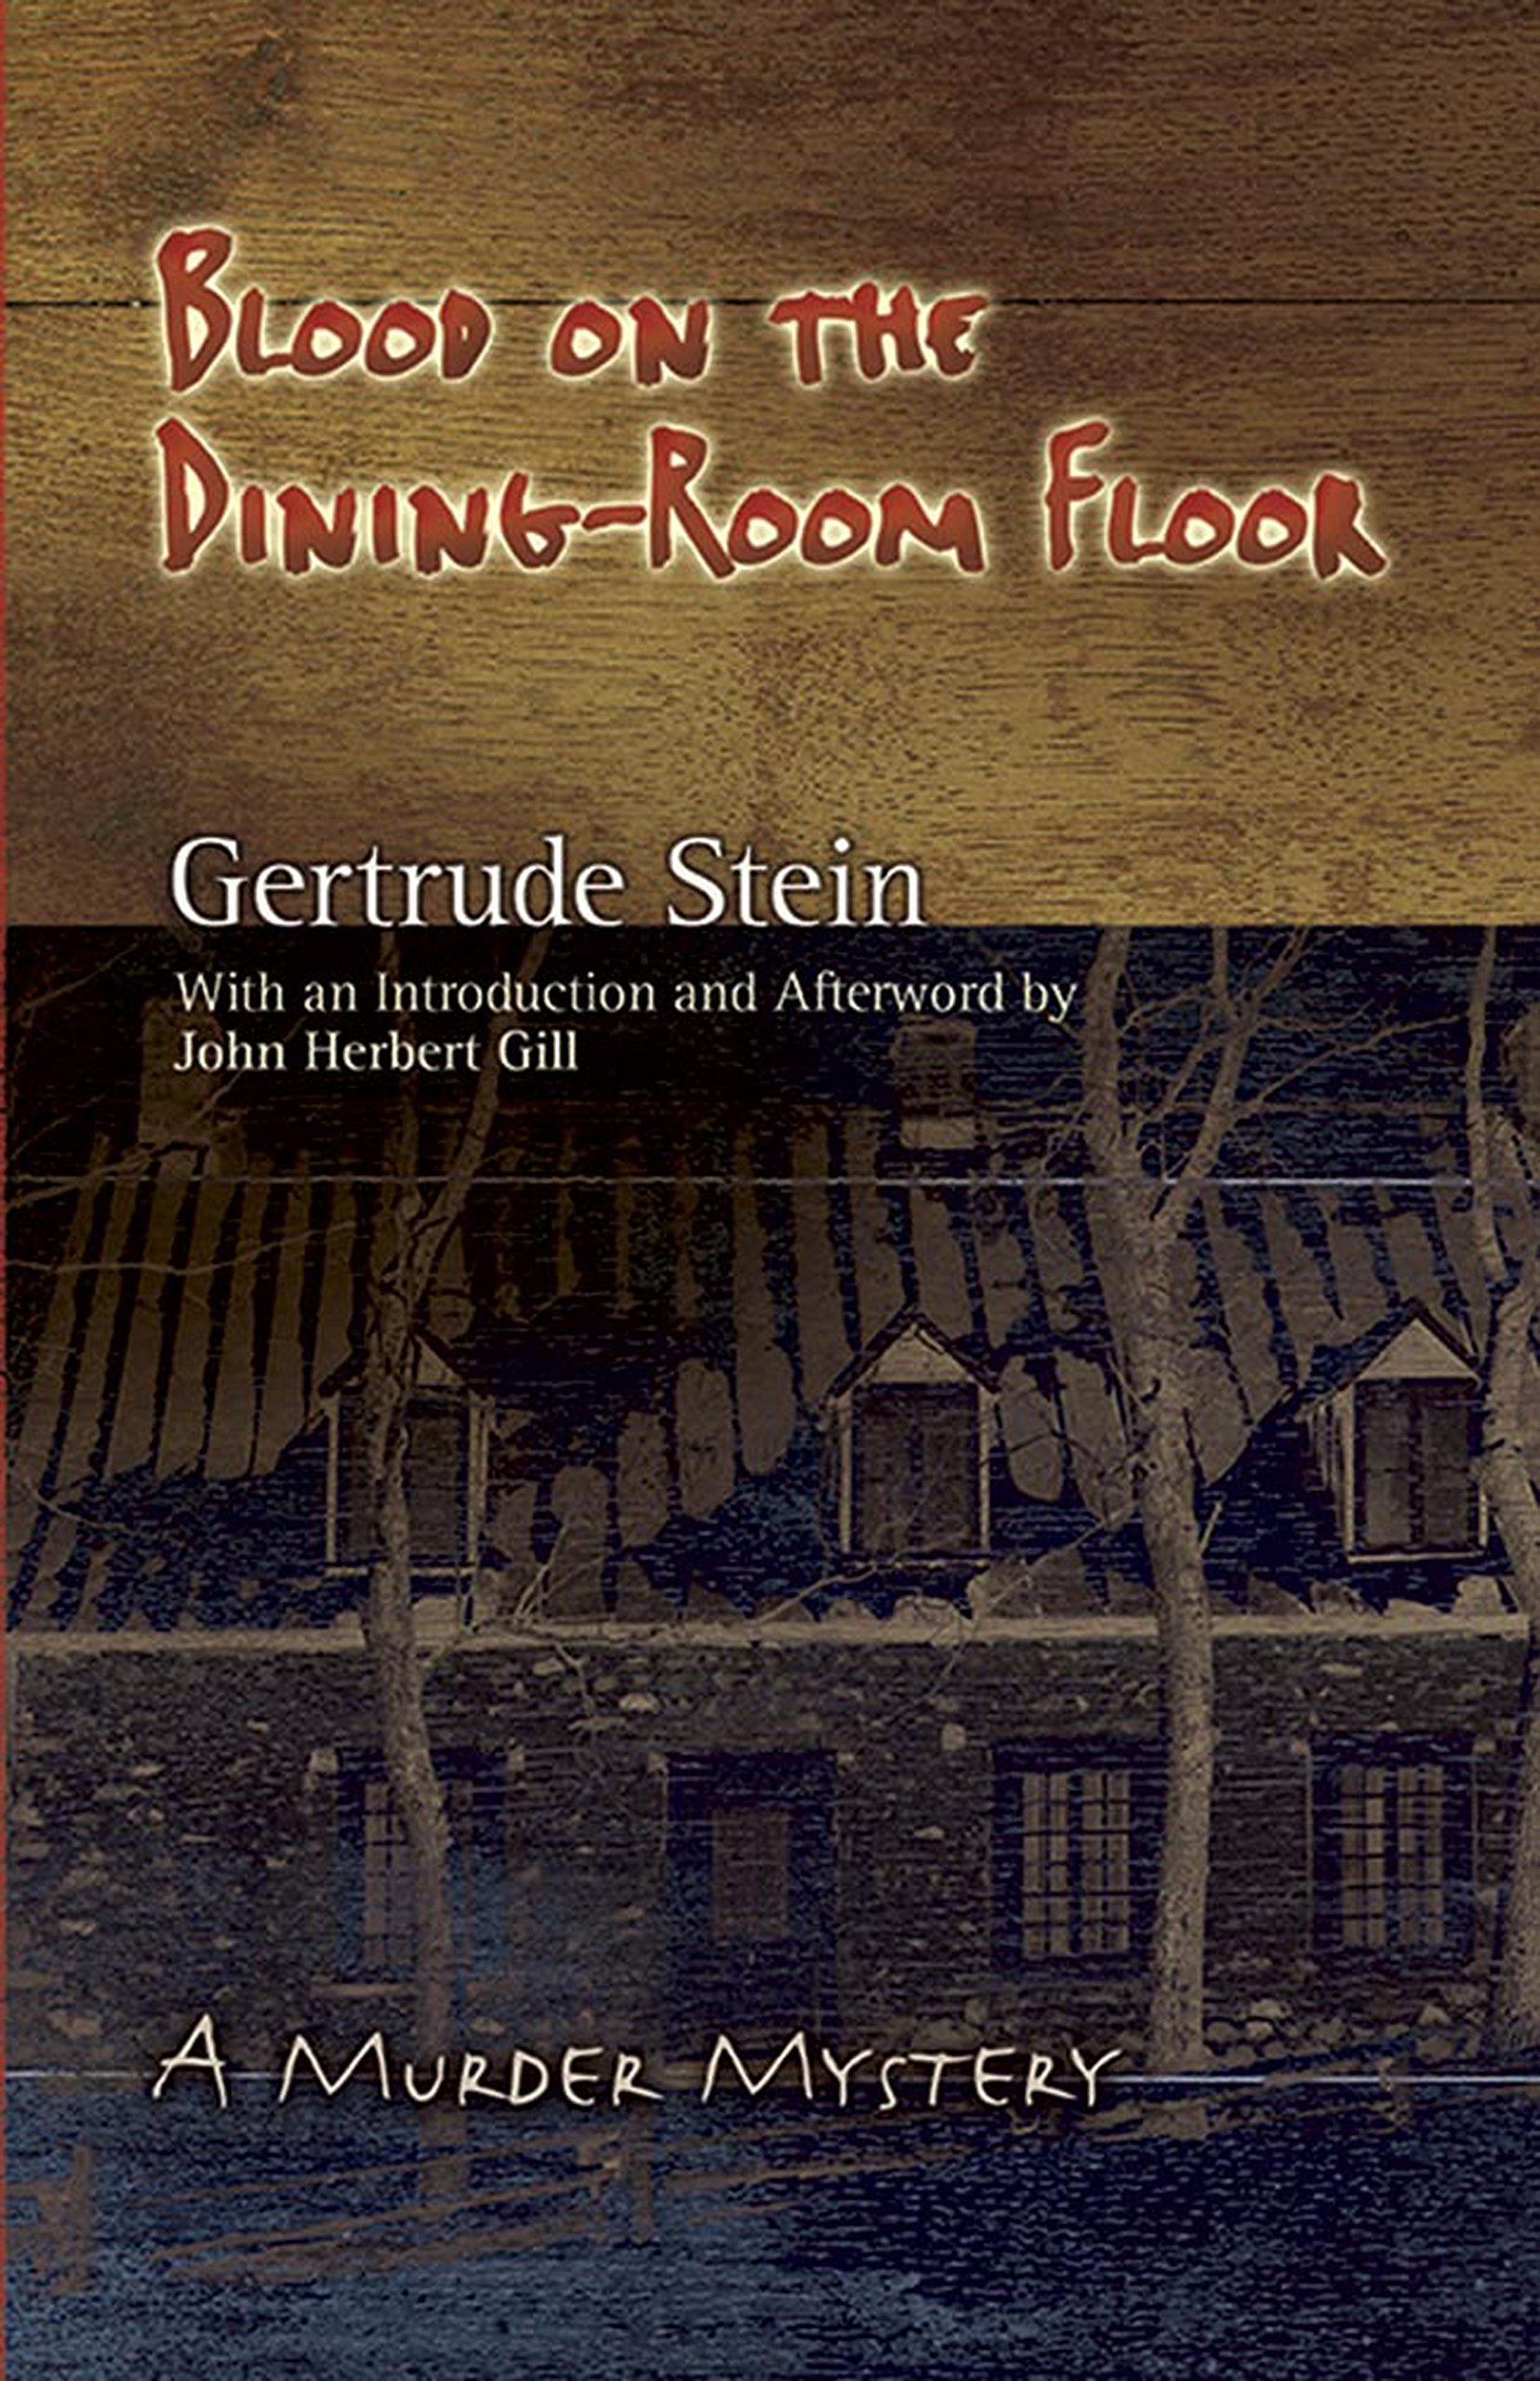 Download Blood on the Dining-Room Floor: A Murder Mystery (Dover Books on Literature & Drama) pdf